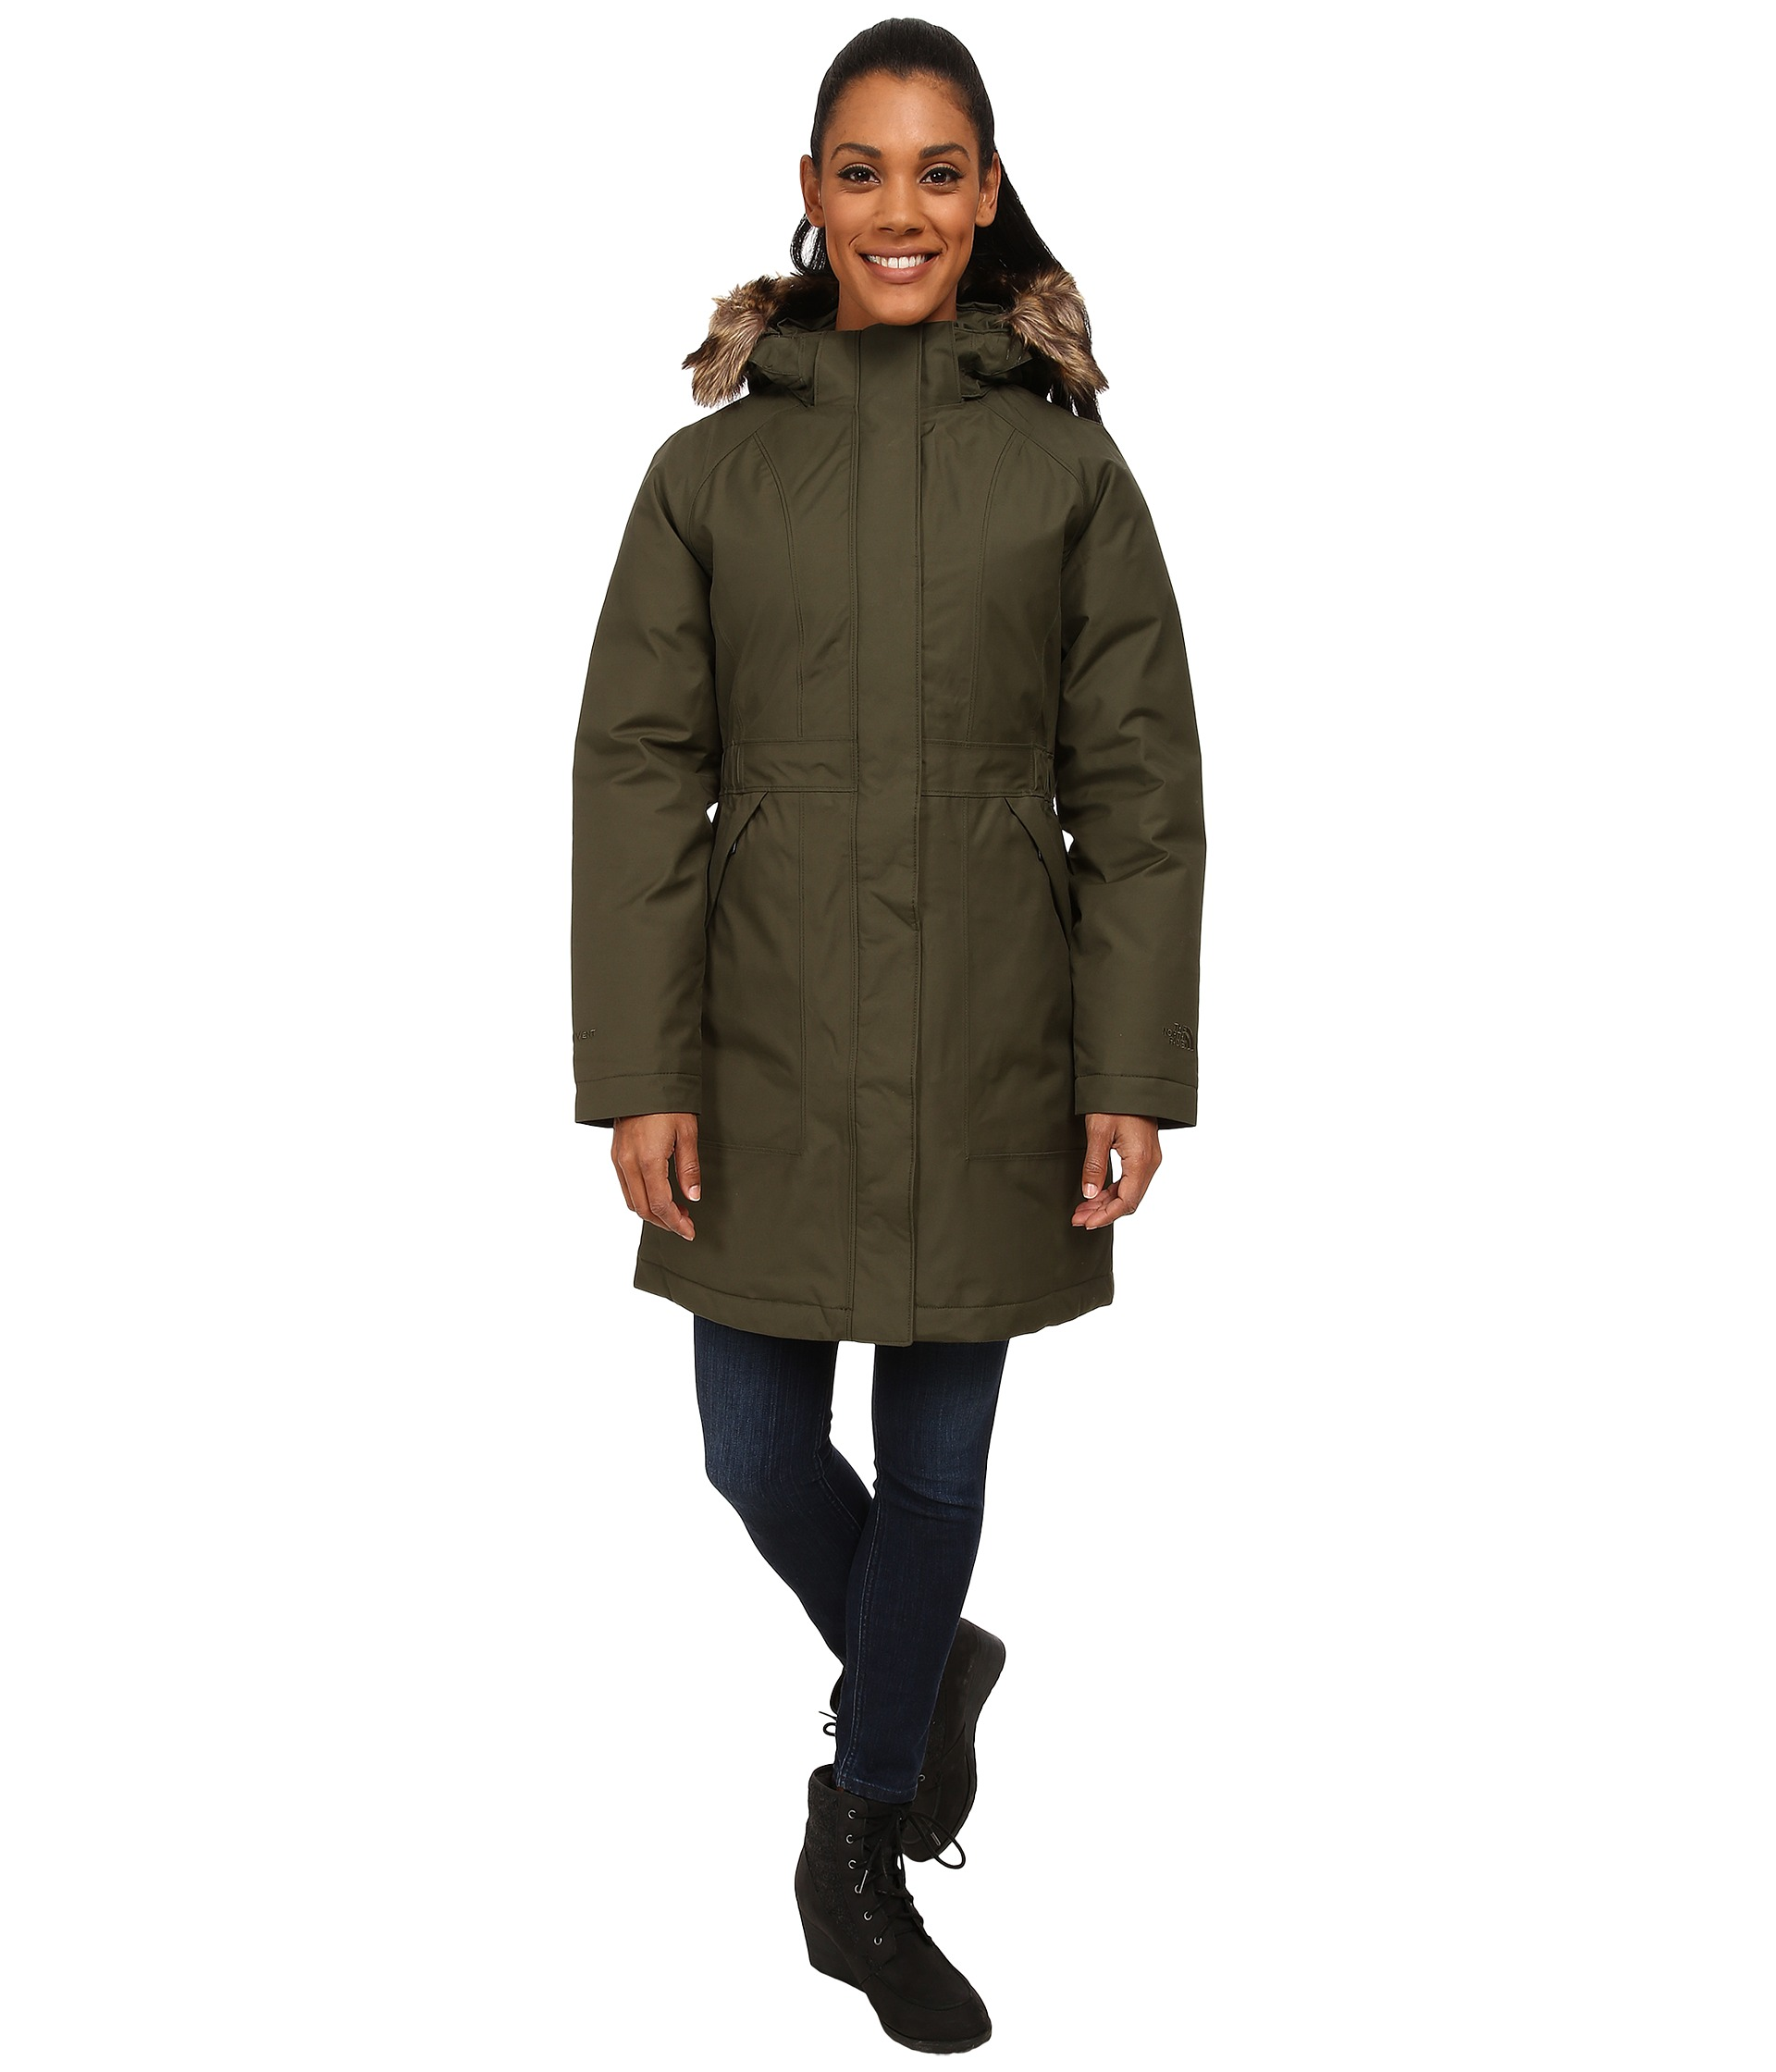 The North Face Women Coats Outerwear~1 North Face Brooklyn Parka